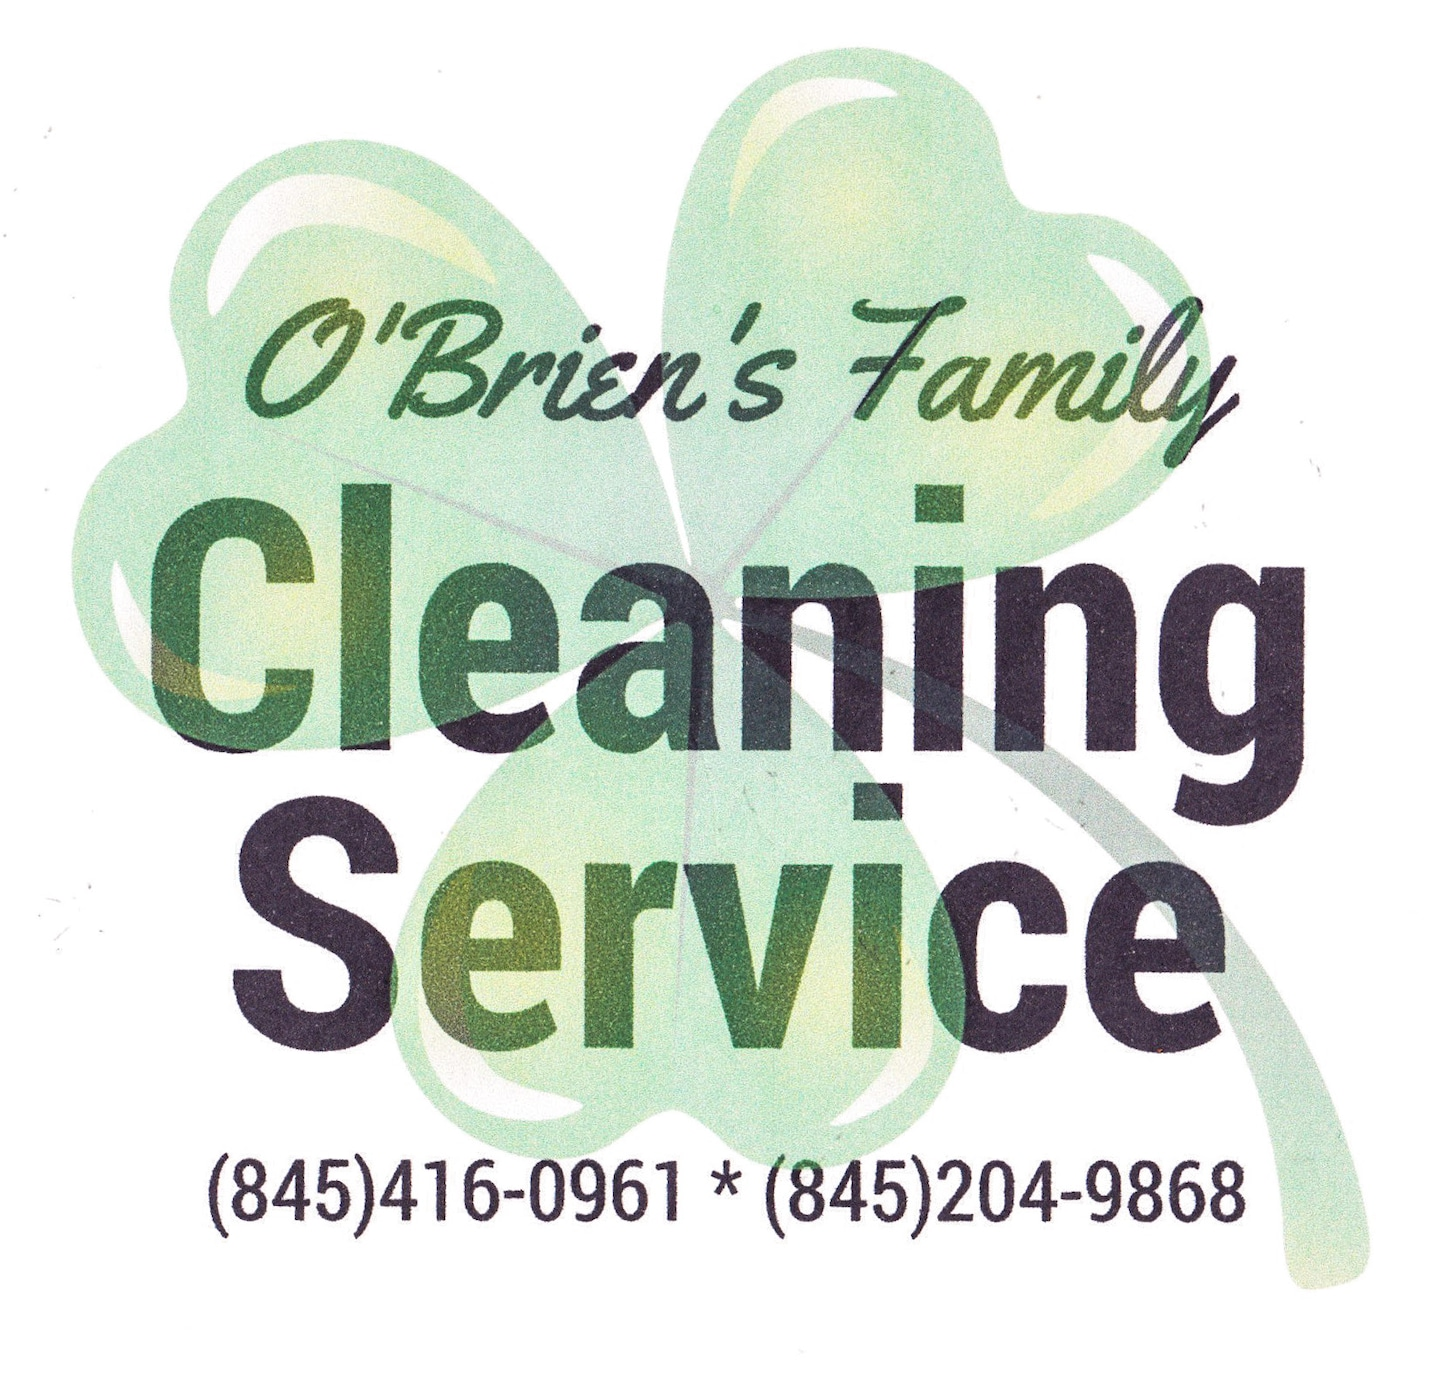 O'Brien's Family Cleaning Service